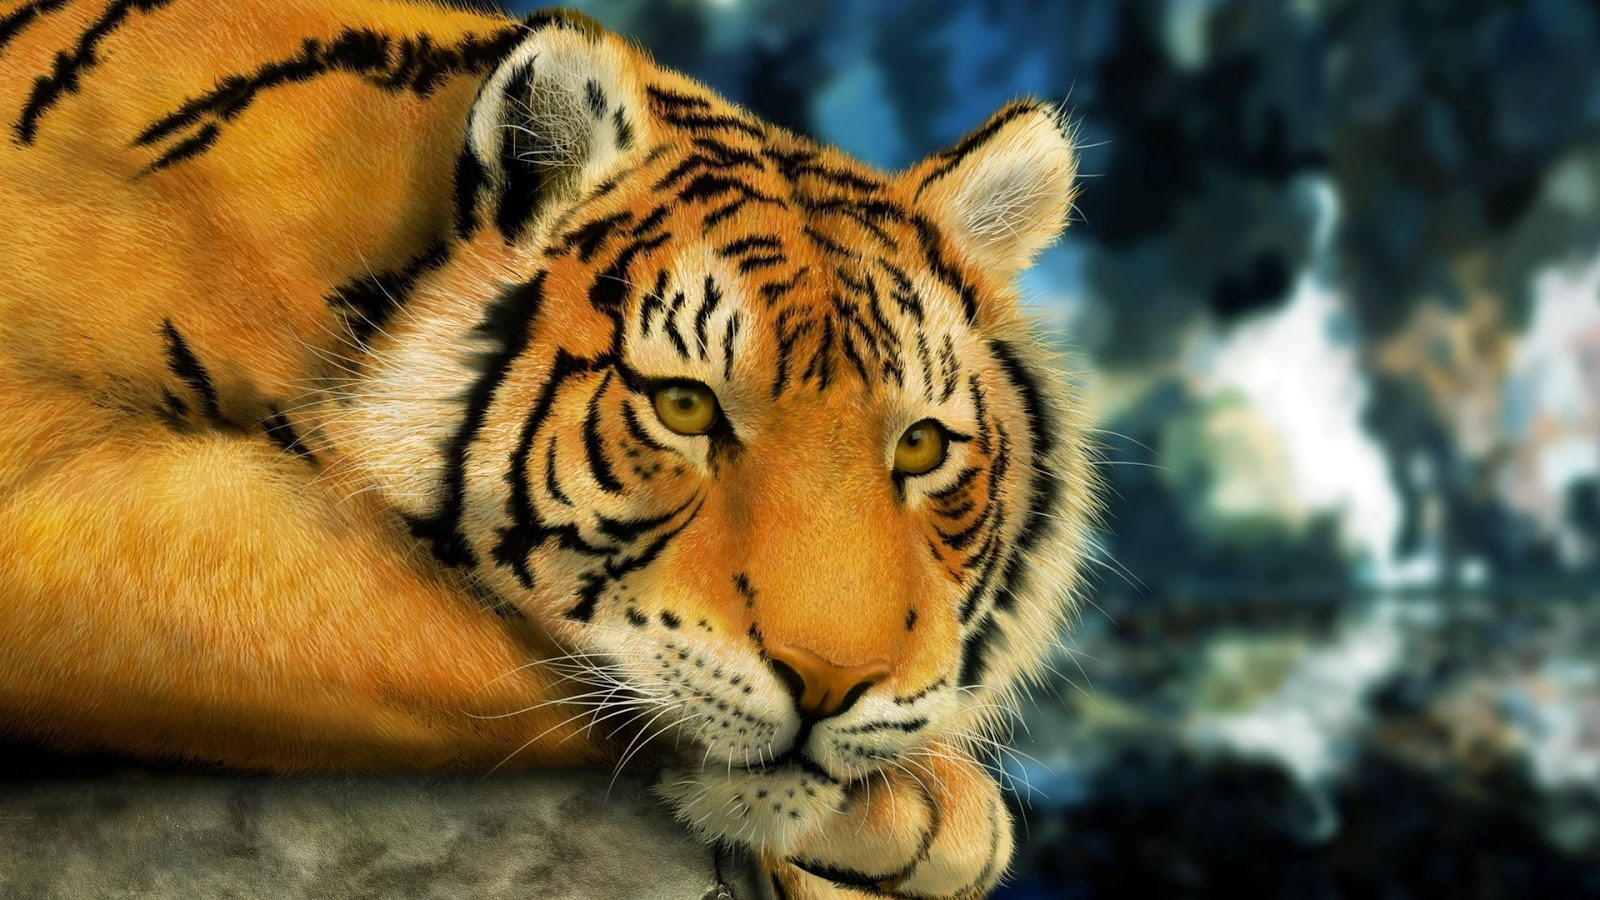 10 amazing animals tiger hd wallpapers full hd | animal of wallpaper